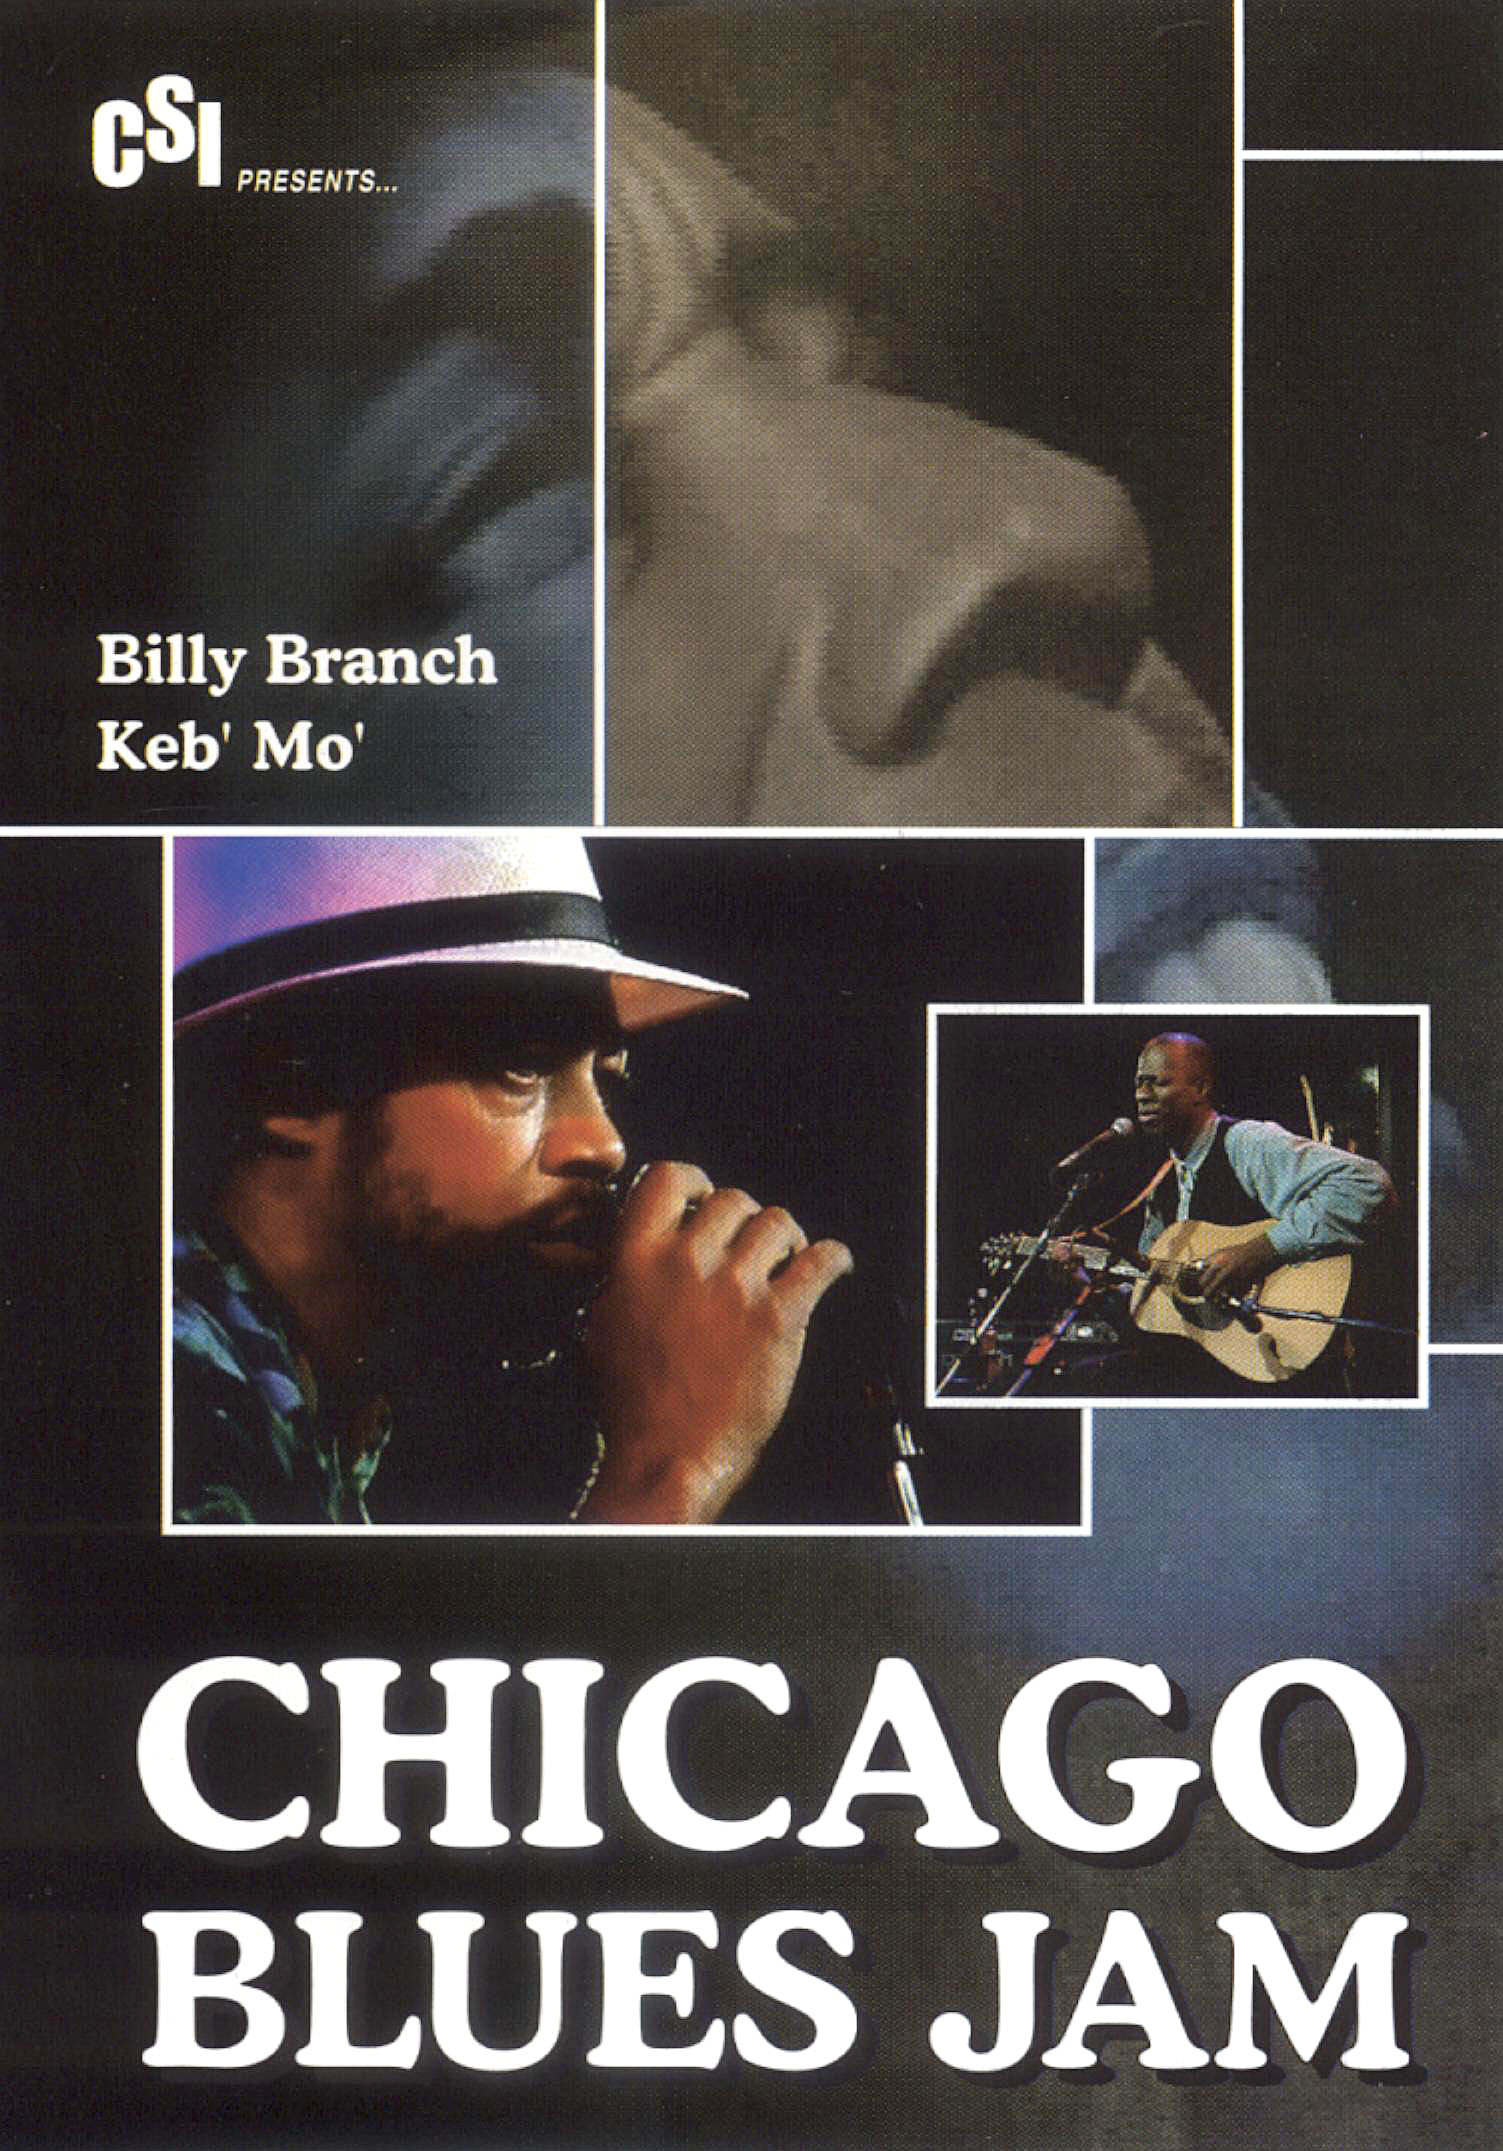 Chicago Blues Jam: Billy Branch/Keb Mo